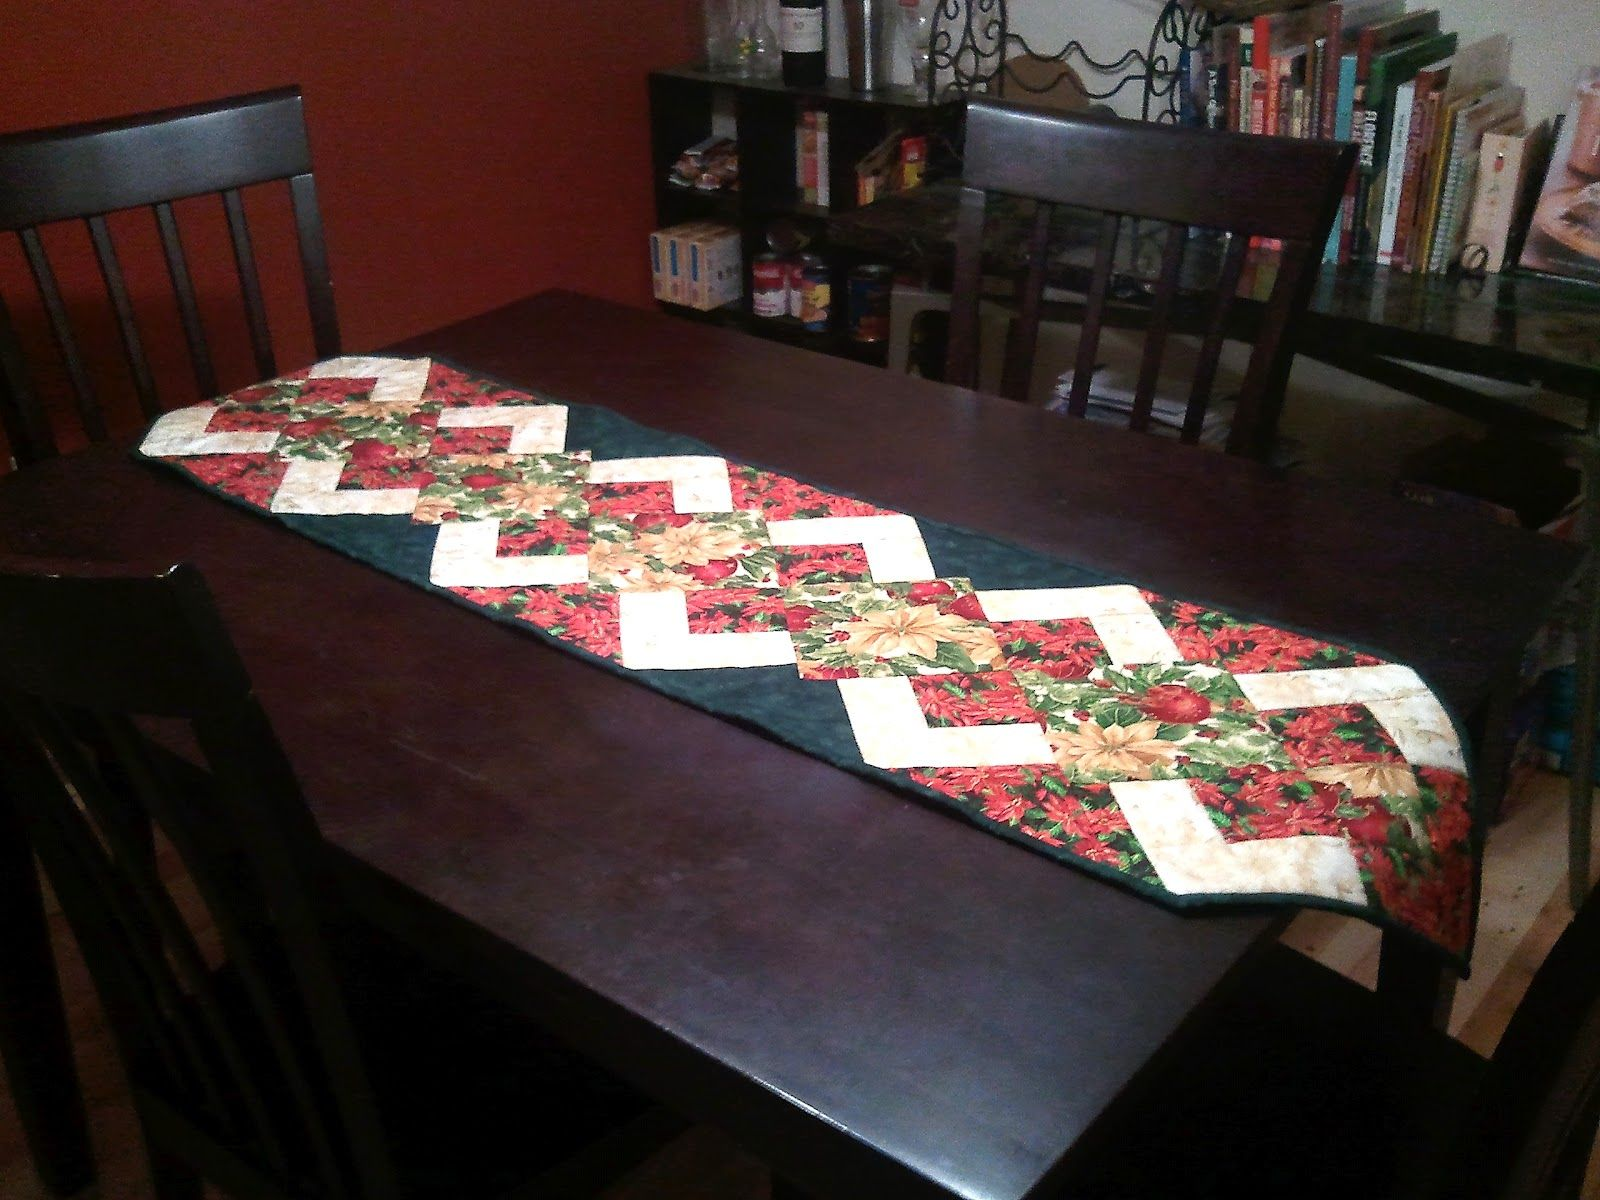 Christmas Table Runner Patterns Free | The Recipe Bunny: Christmas ... : christmas quilting patterns table runners - Adamdwight.com